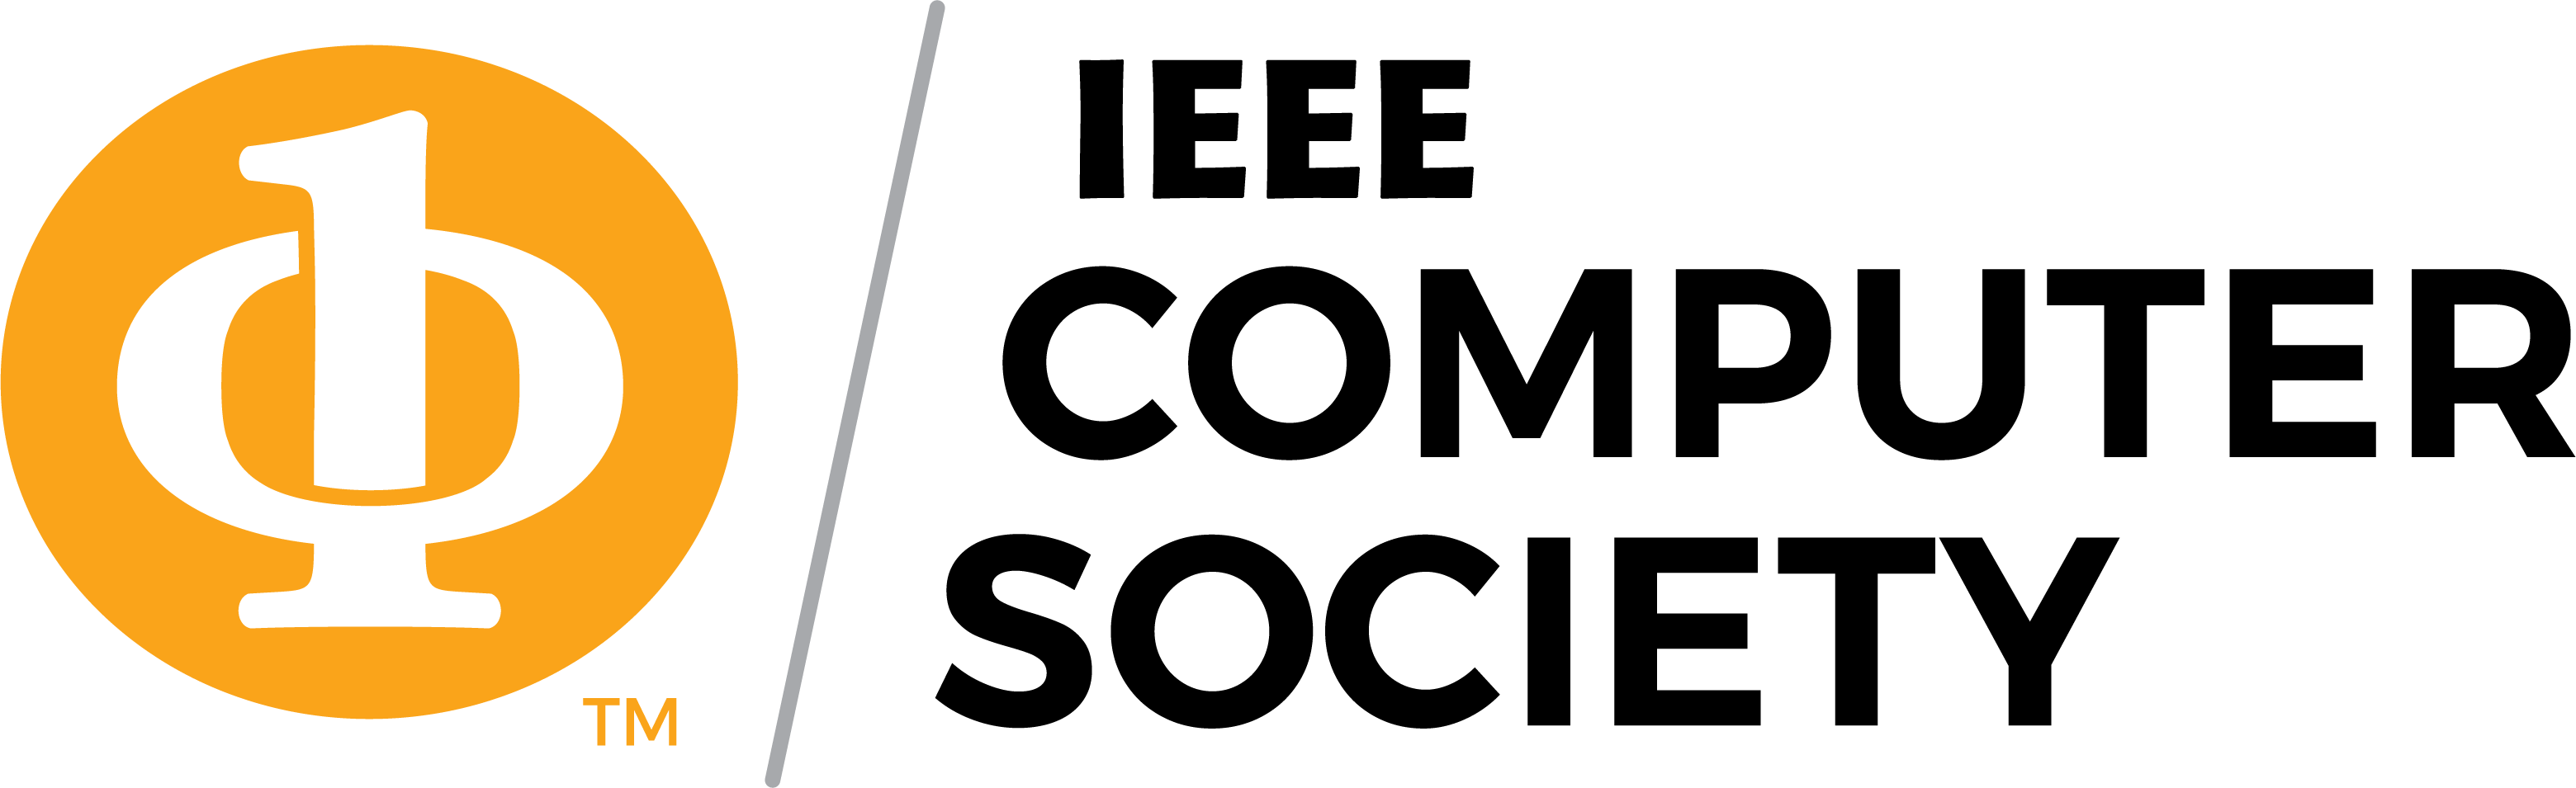 TCSE Logos - IEEE Computer Society Technical Council on Software ...